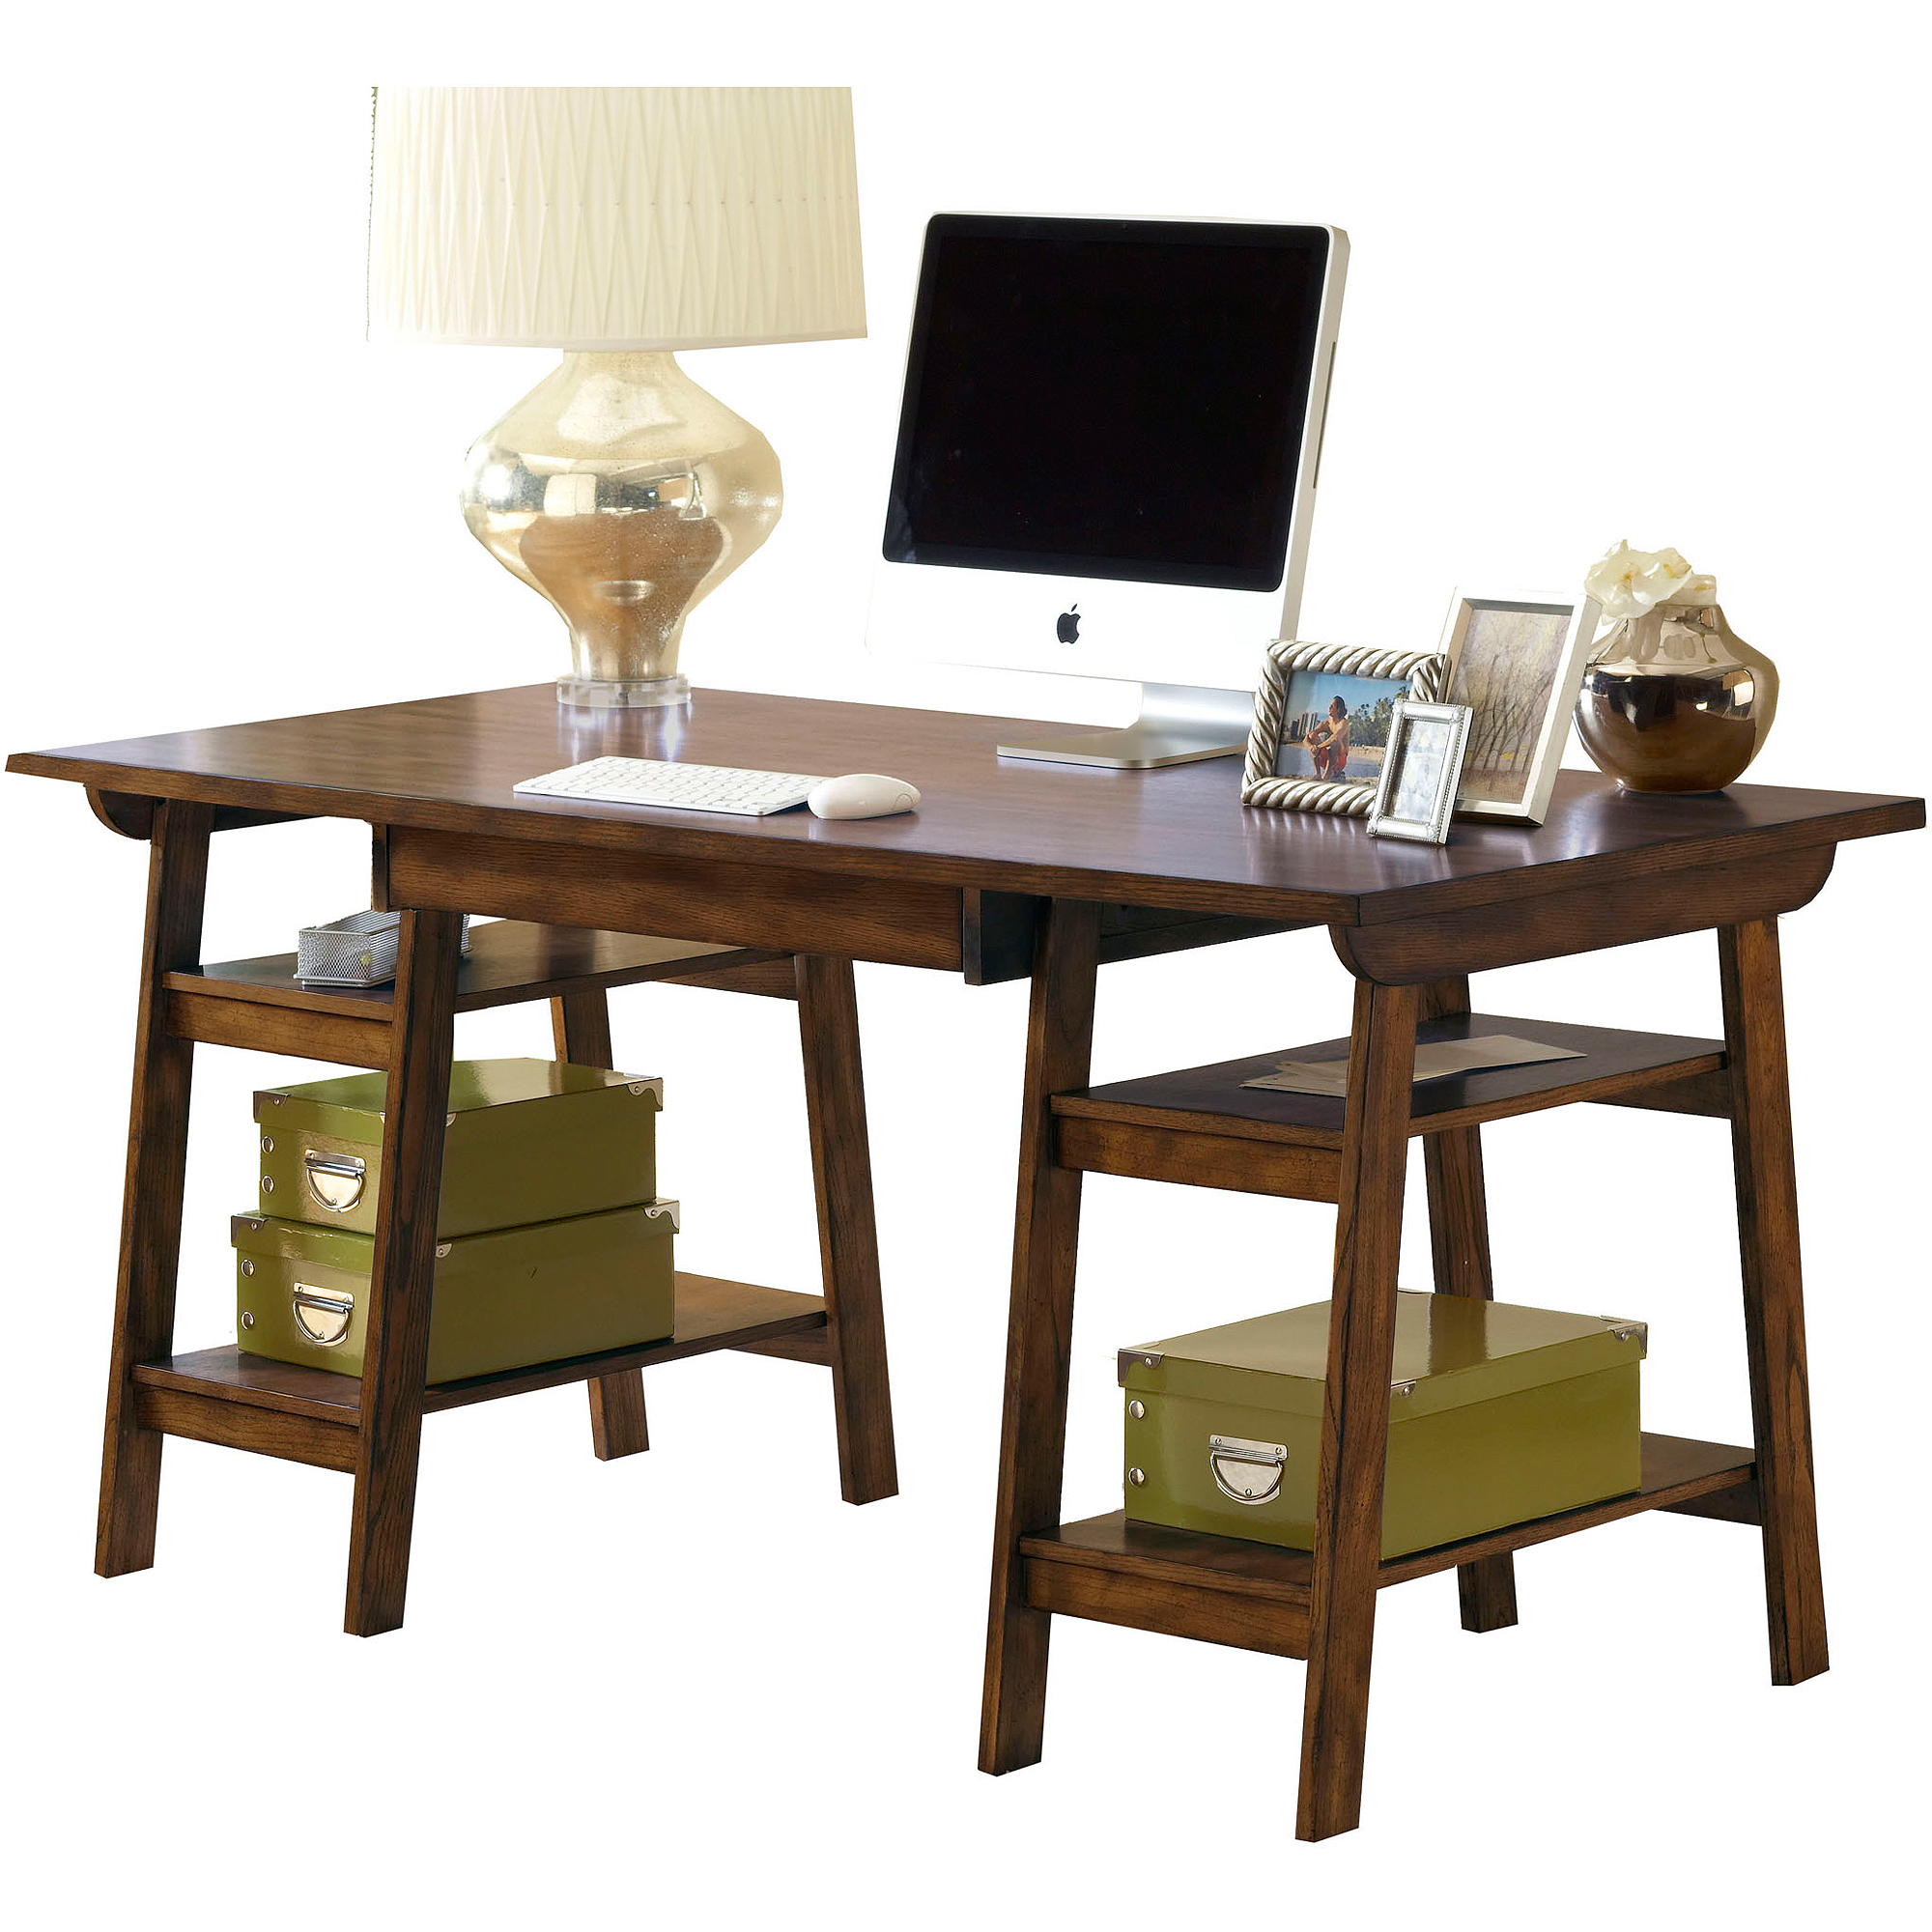 Amazing photo of  Park View 30 Swivel Arm Bar Stool in Medium Brown Oak Walmart.com with #614022 color and 2000x2000 pixels